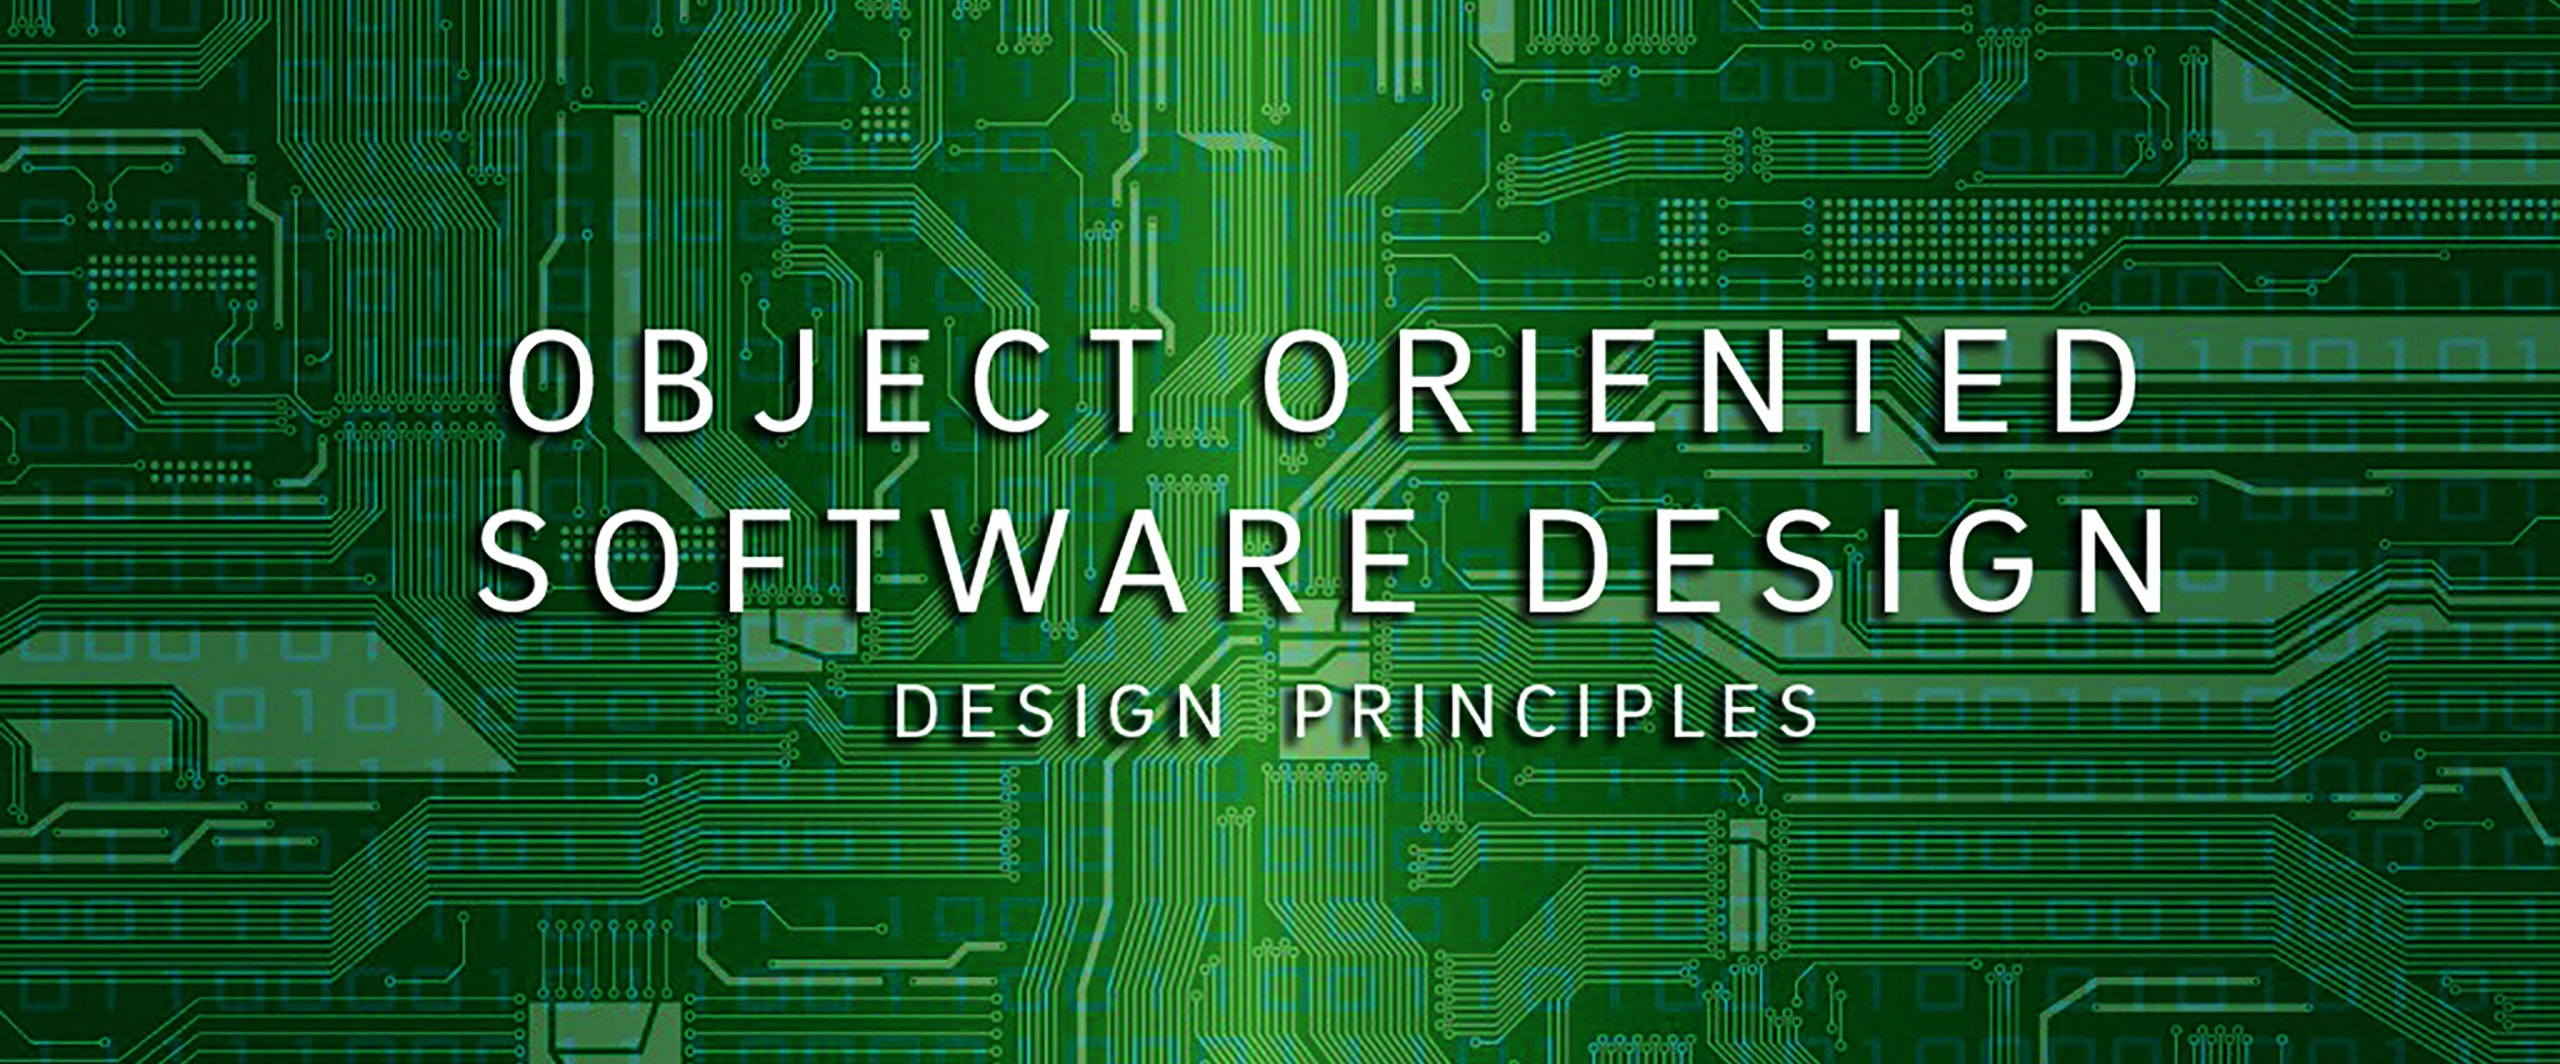 Object Oriented Design Principles By Halil Ozel Medium